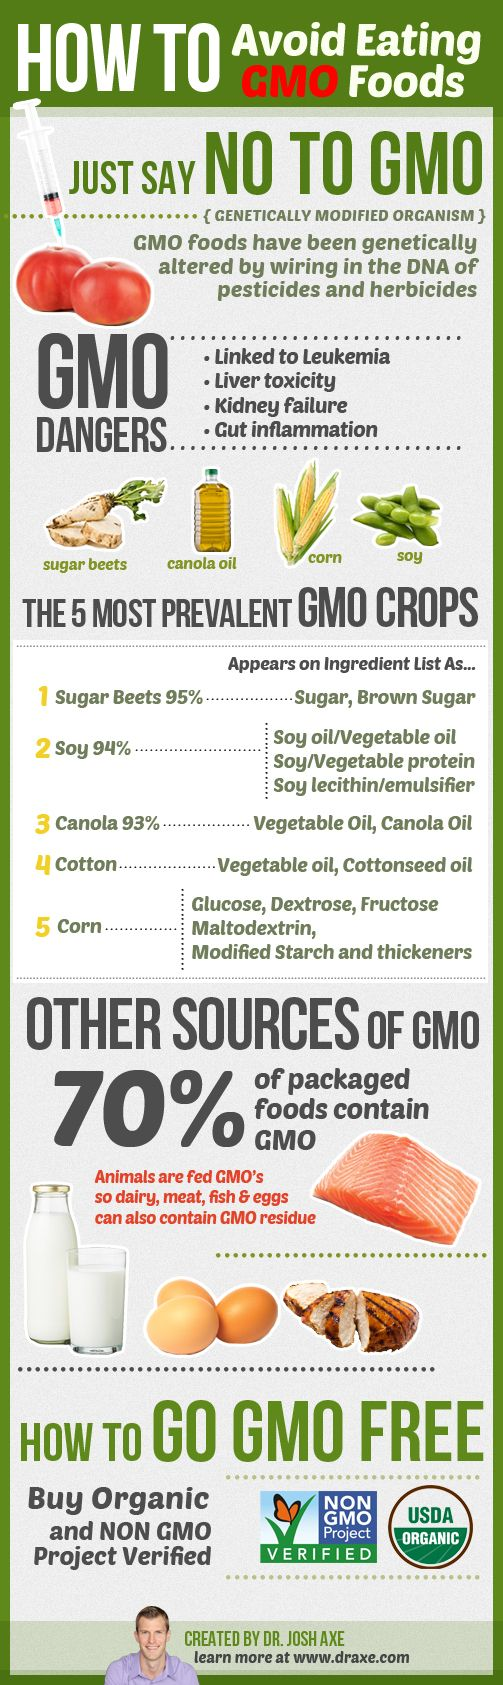 Genetically Modified Foods (GMO) Linked to Tumors, Allergies and Early Death | http://www.draxe.com/genetically-modified-foods-gmo-linked-tumors-allergies-early-death/